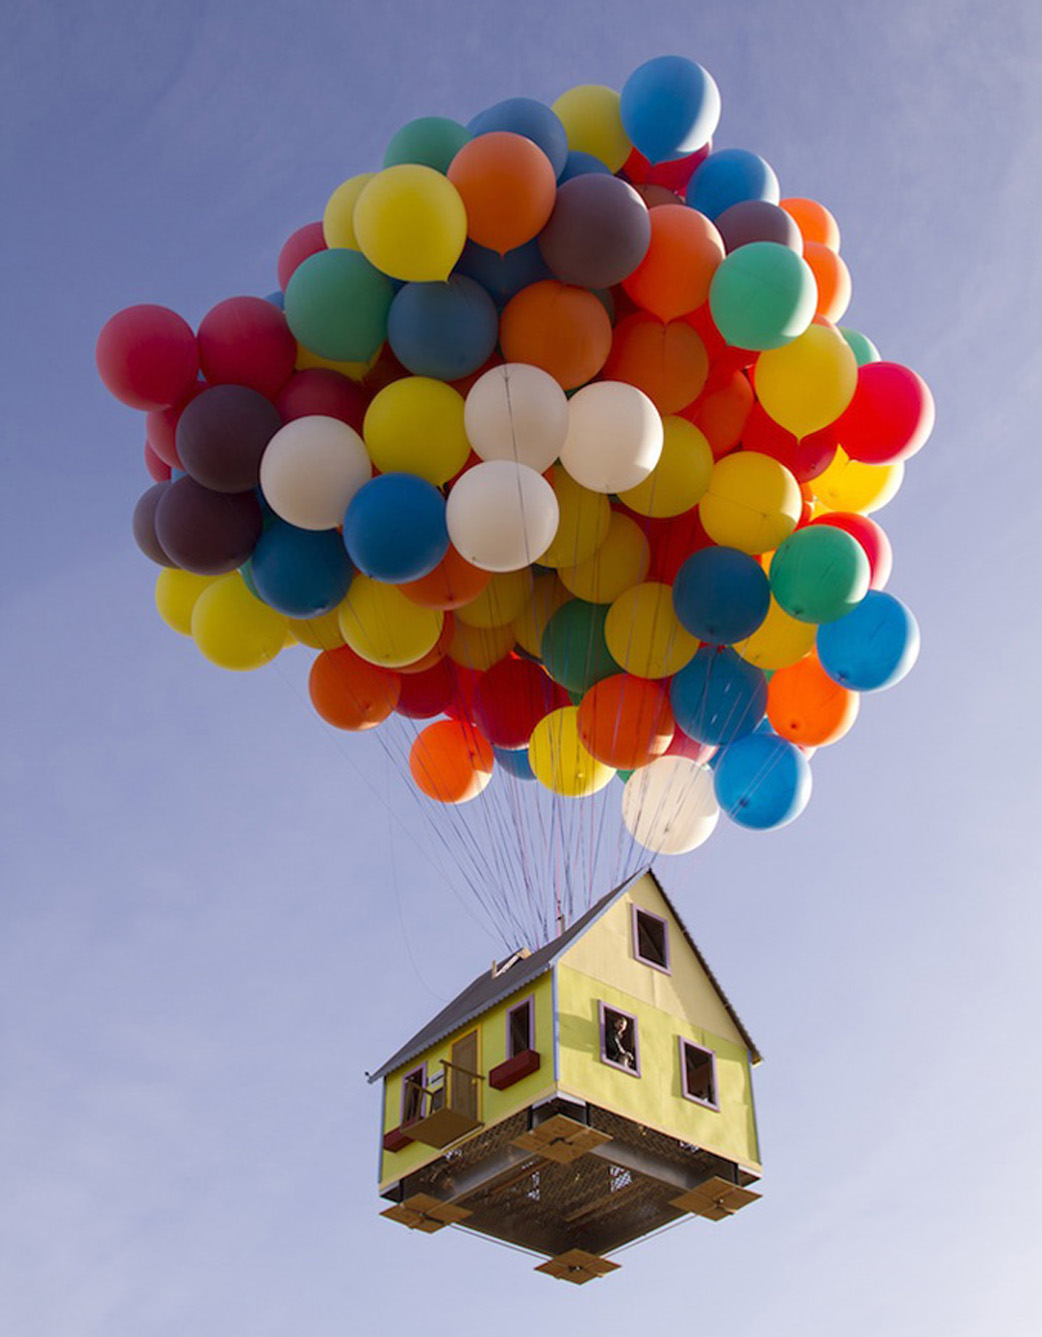 Up House Balloons Wallace Church Inc Real Balloon House From The Movie Up